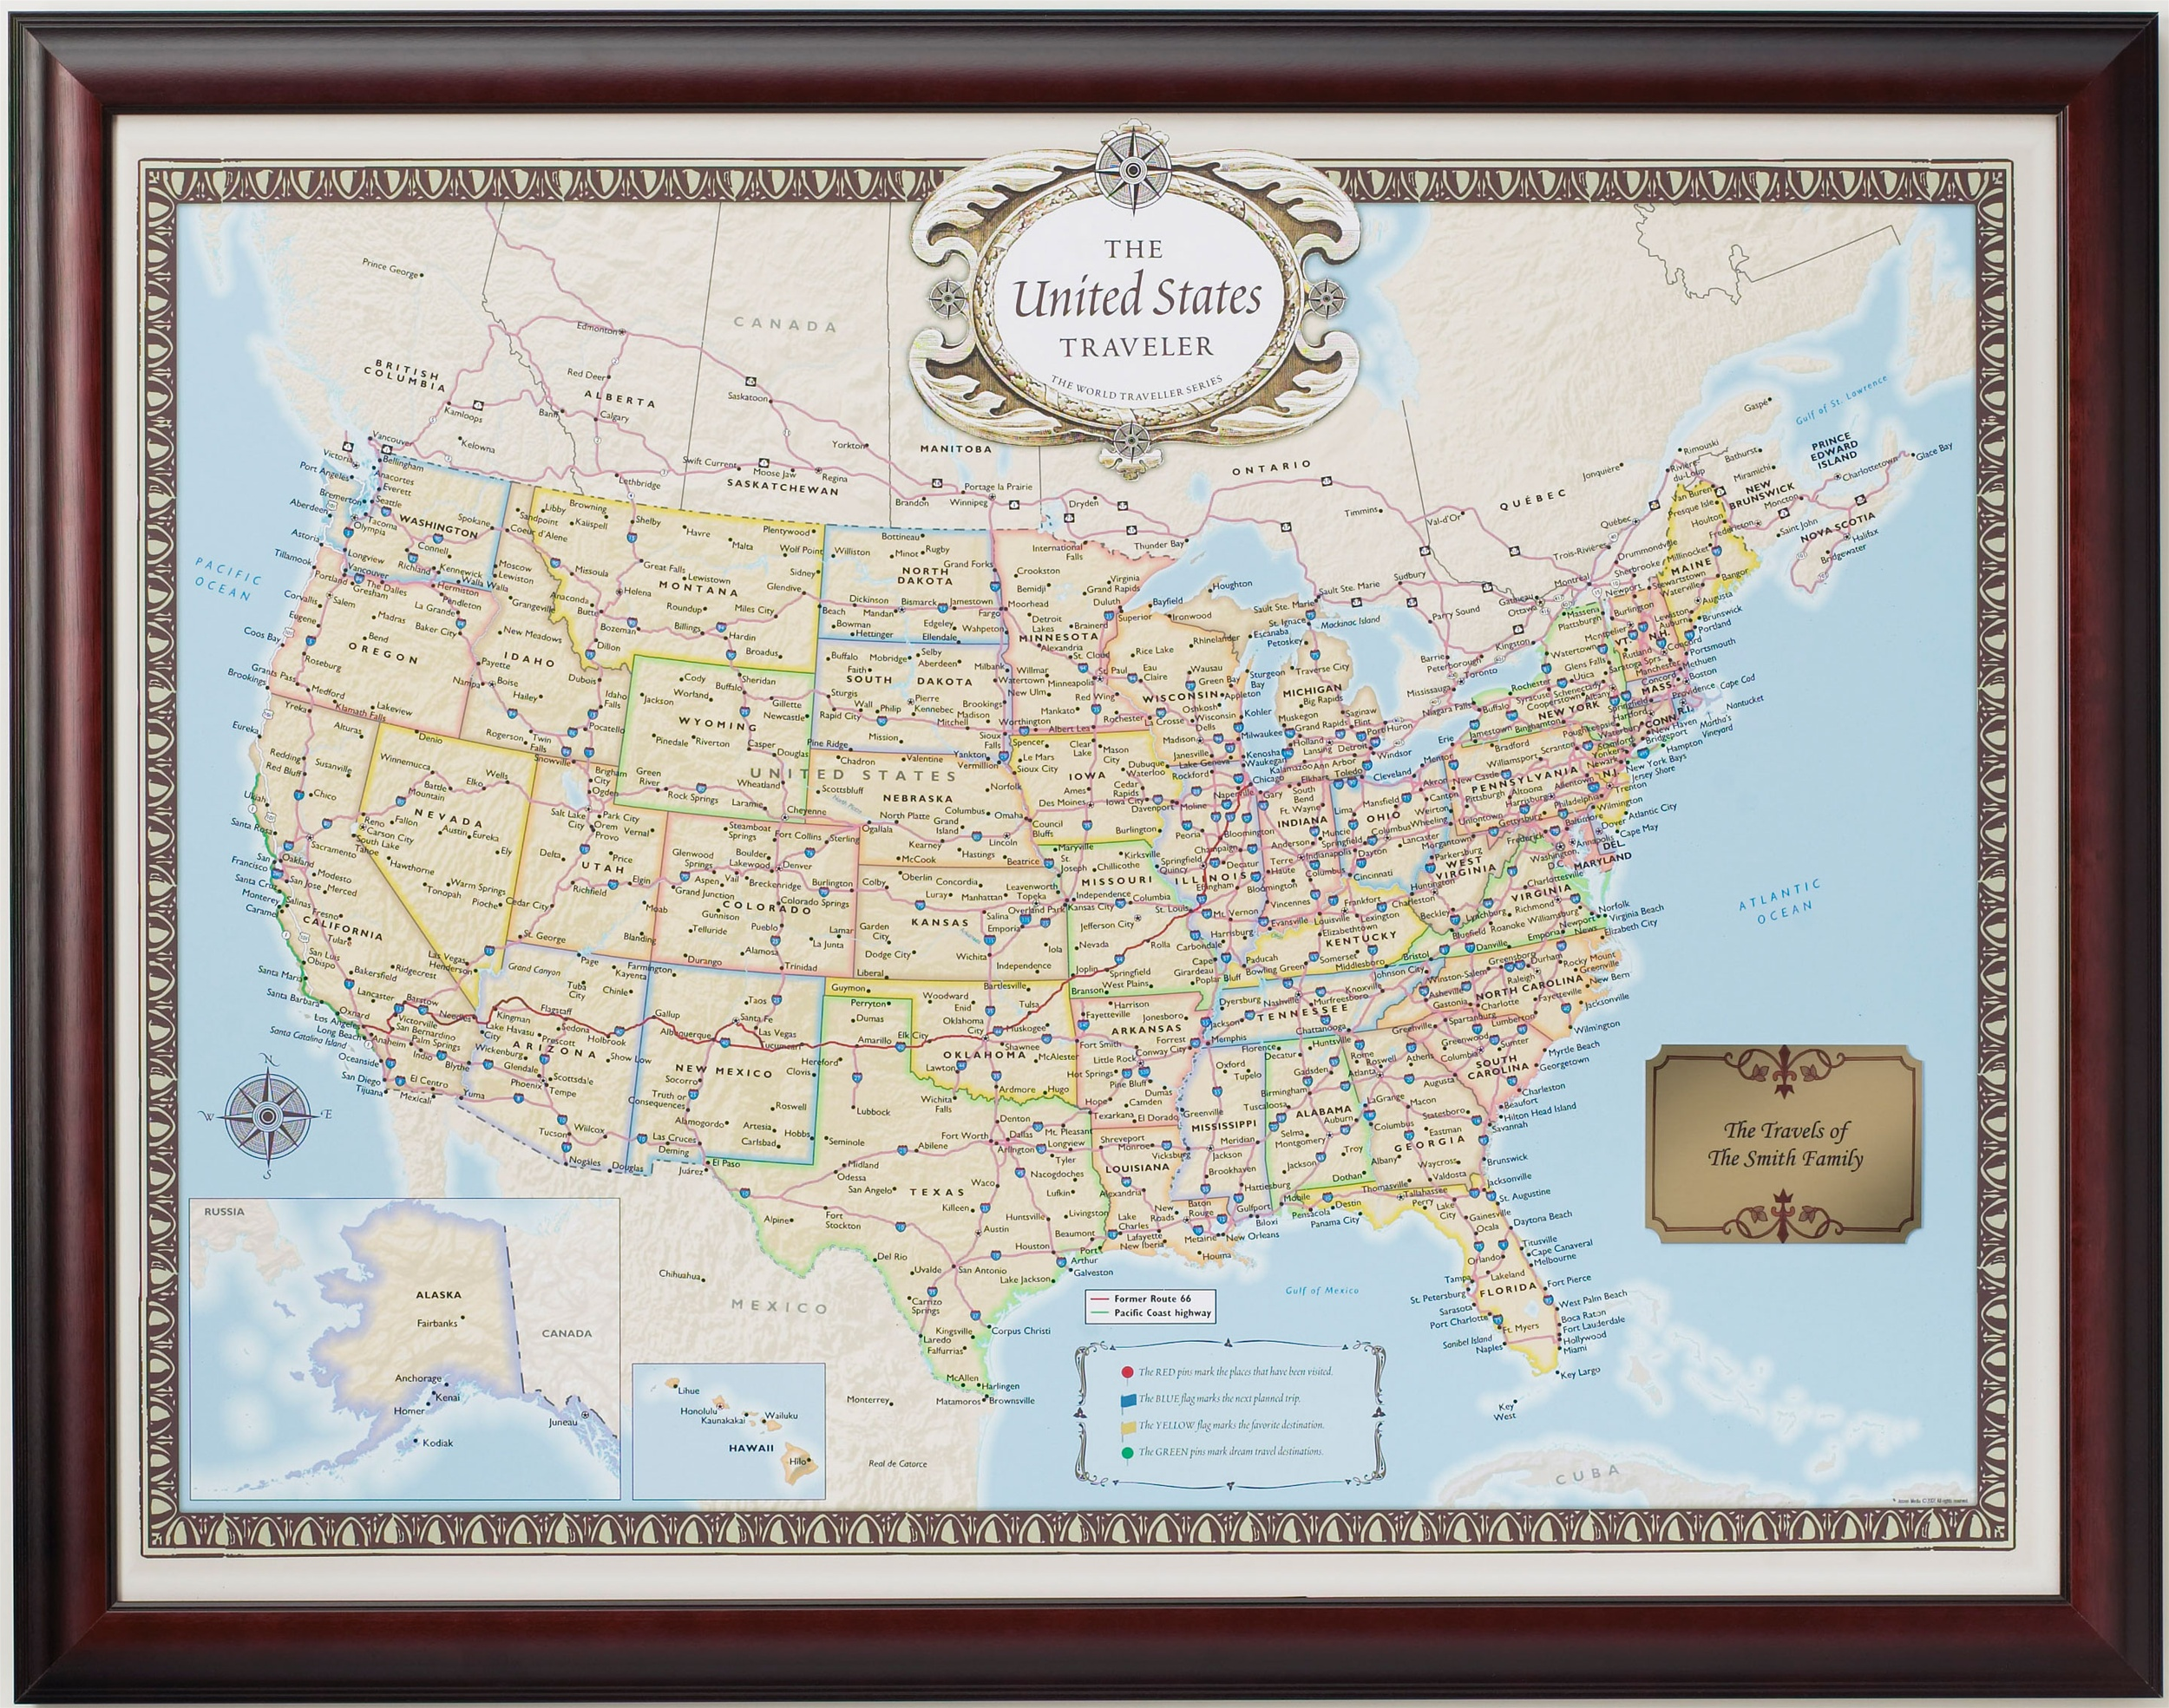 United States Traveler Push Pin Map Personalized From OnlyGlobes - Framed us map